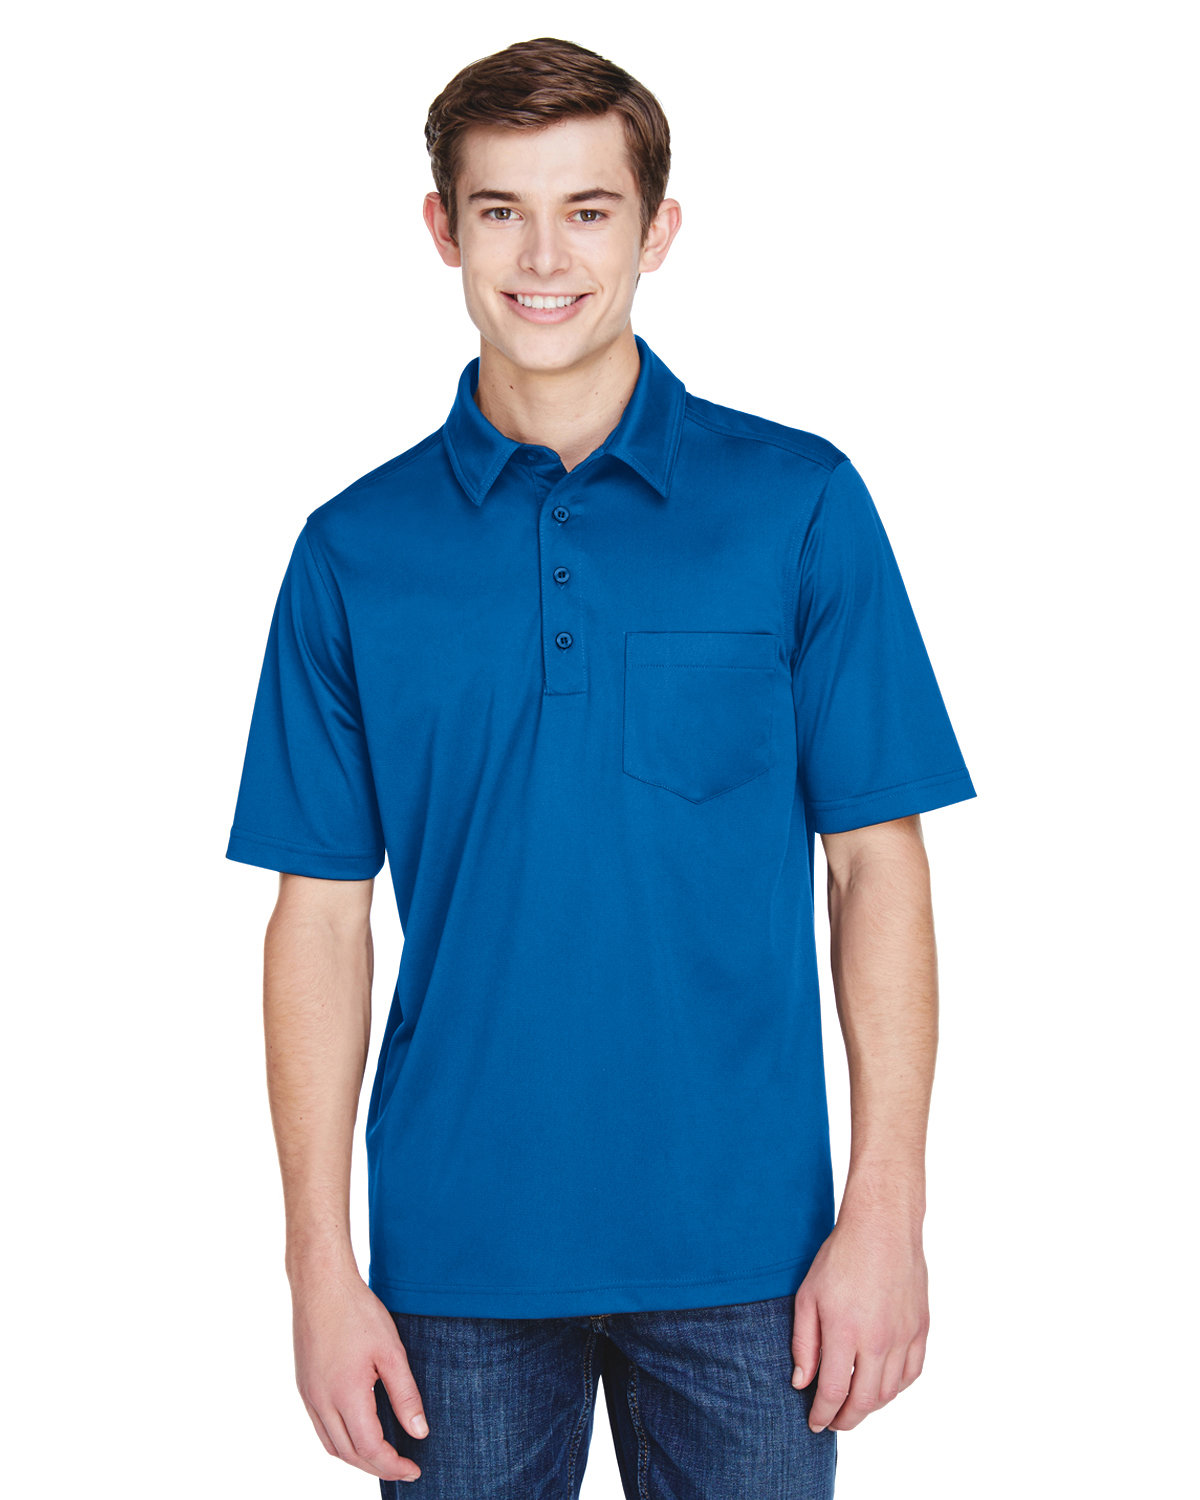 Extreme Men's Eperformance™ Shift Snag Protection Plus Polo TRUE ROYAL